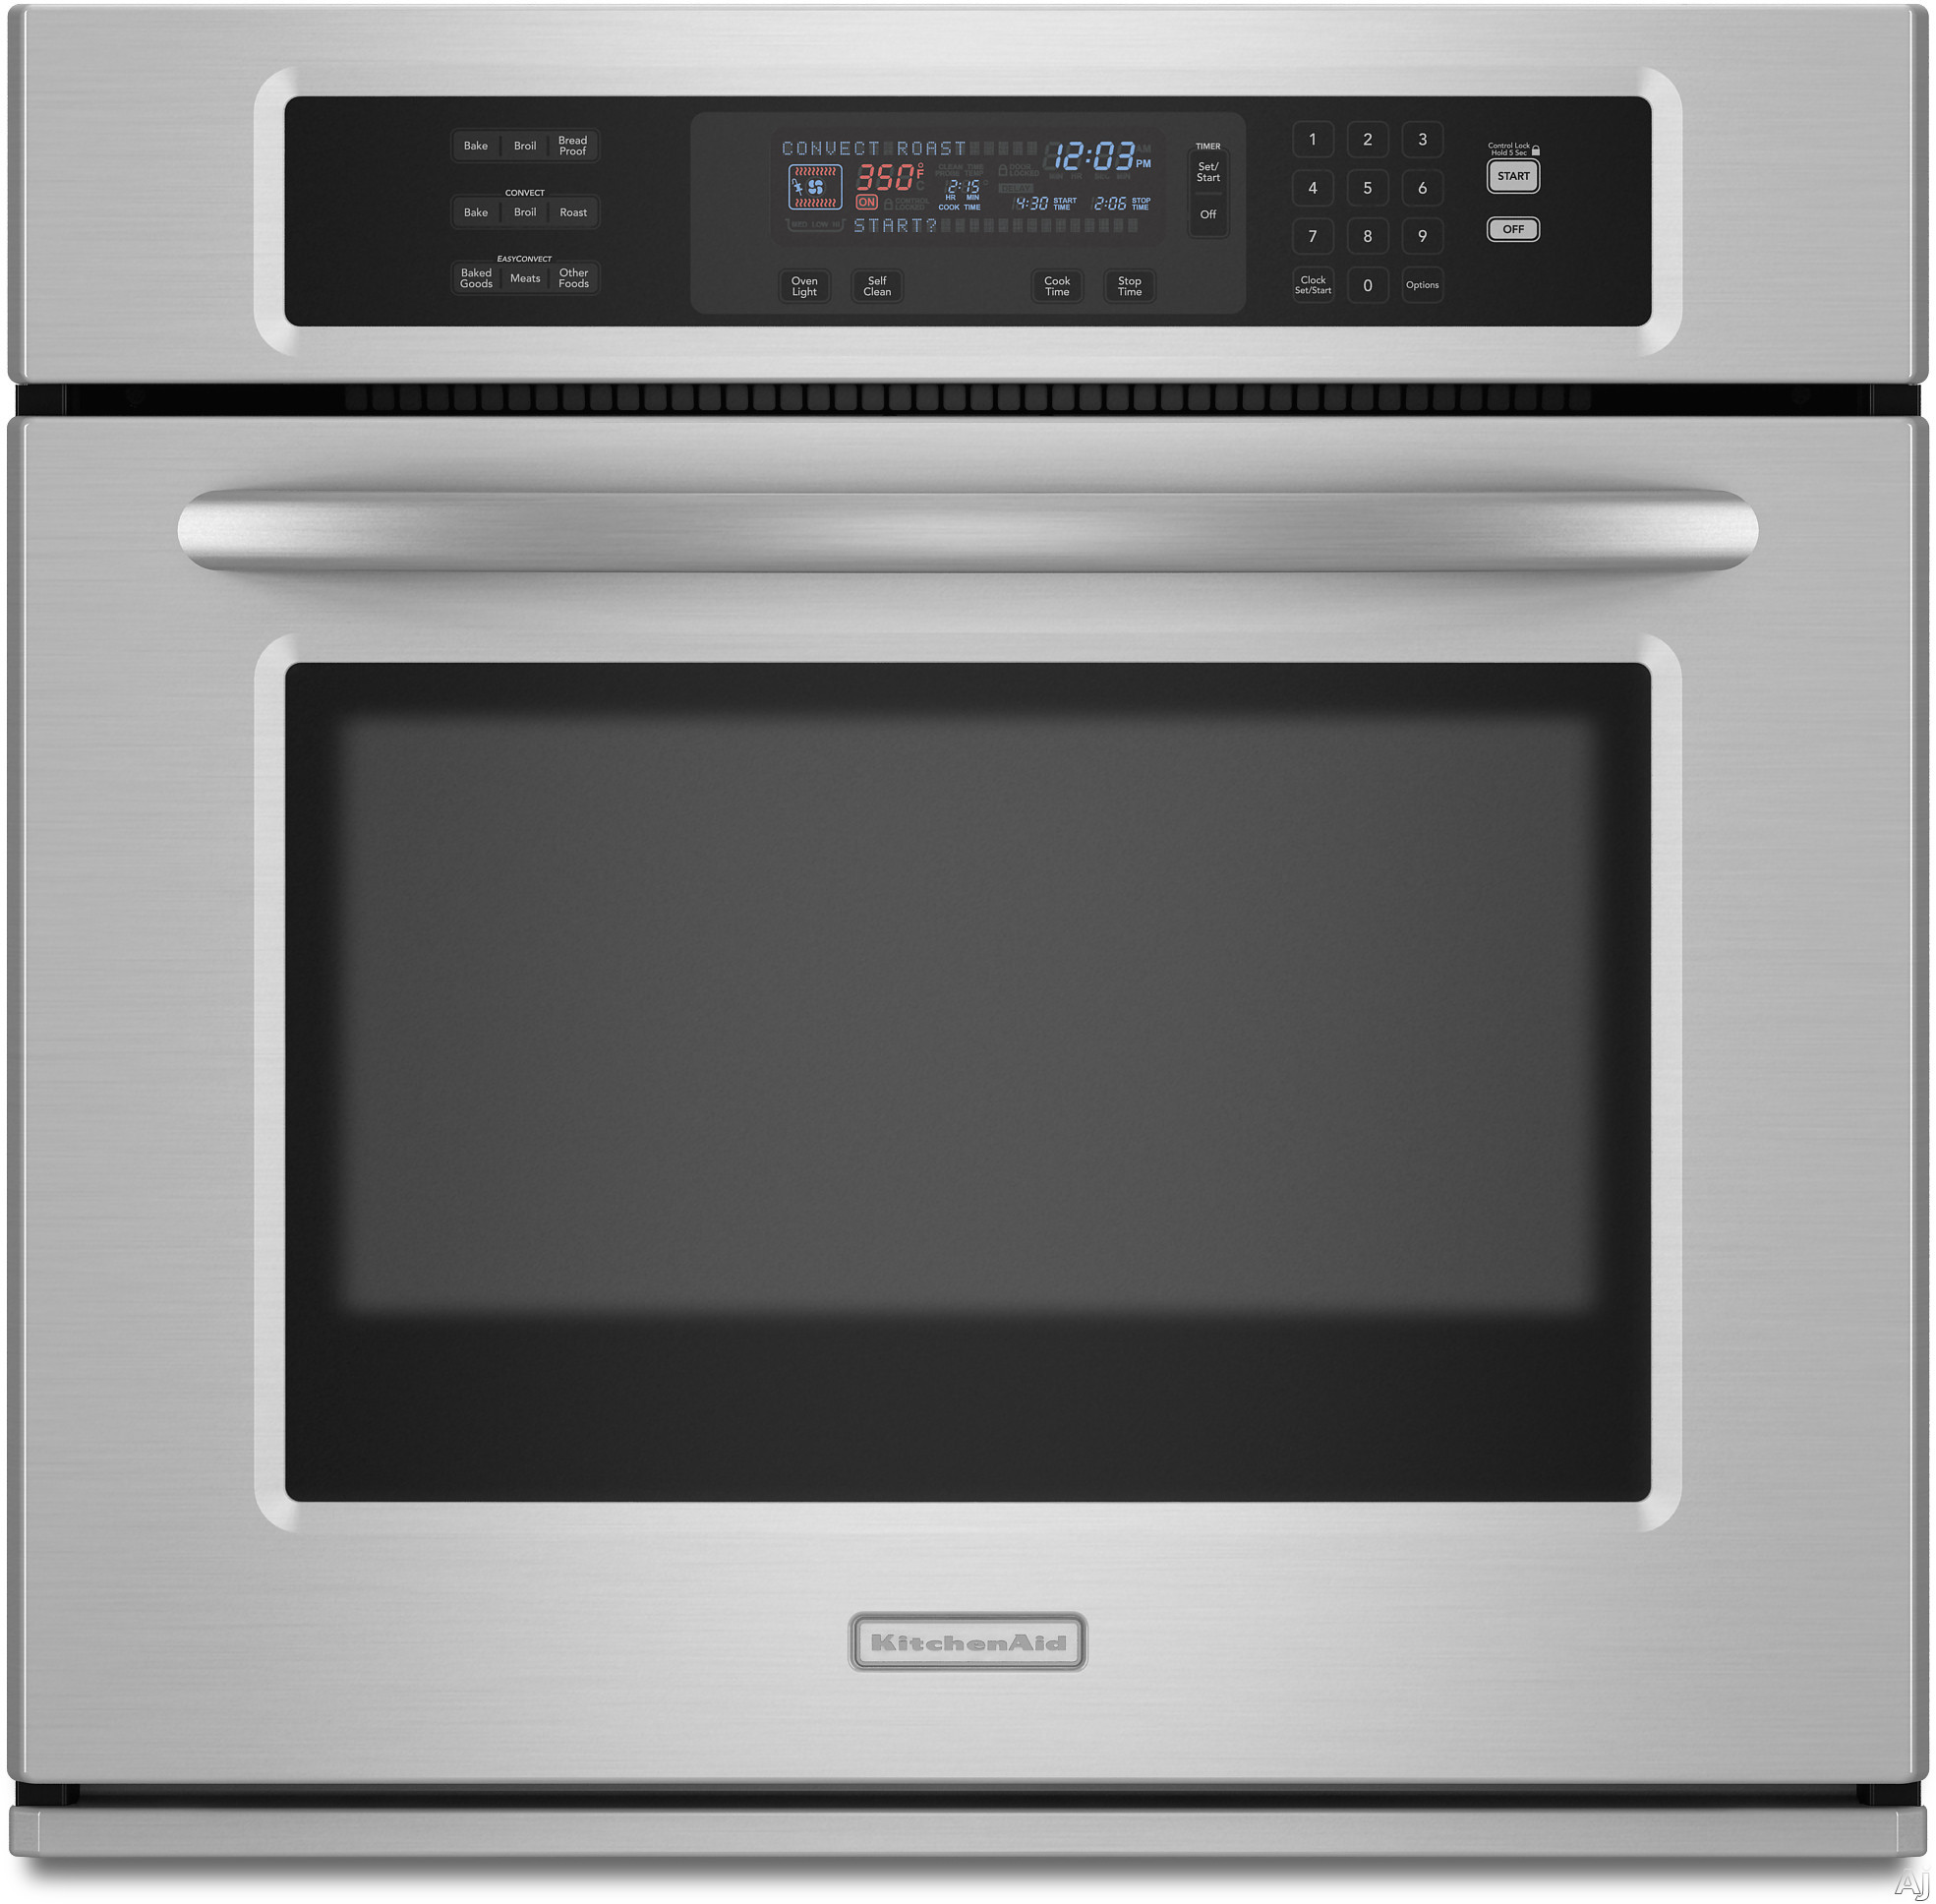 Kitchenaid kitchenaid wall oven - Kitchenaid microwave ...